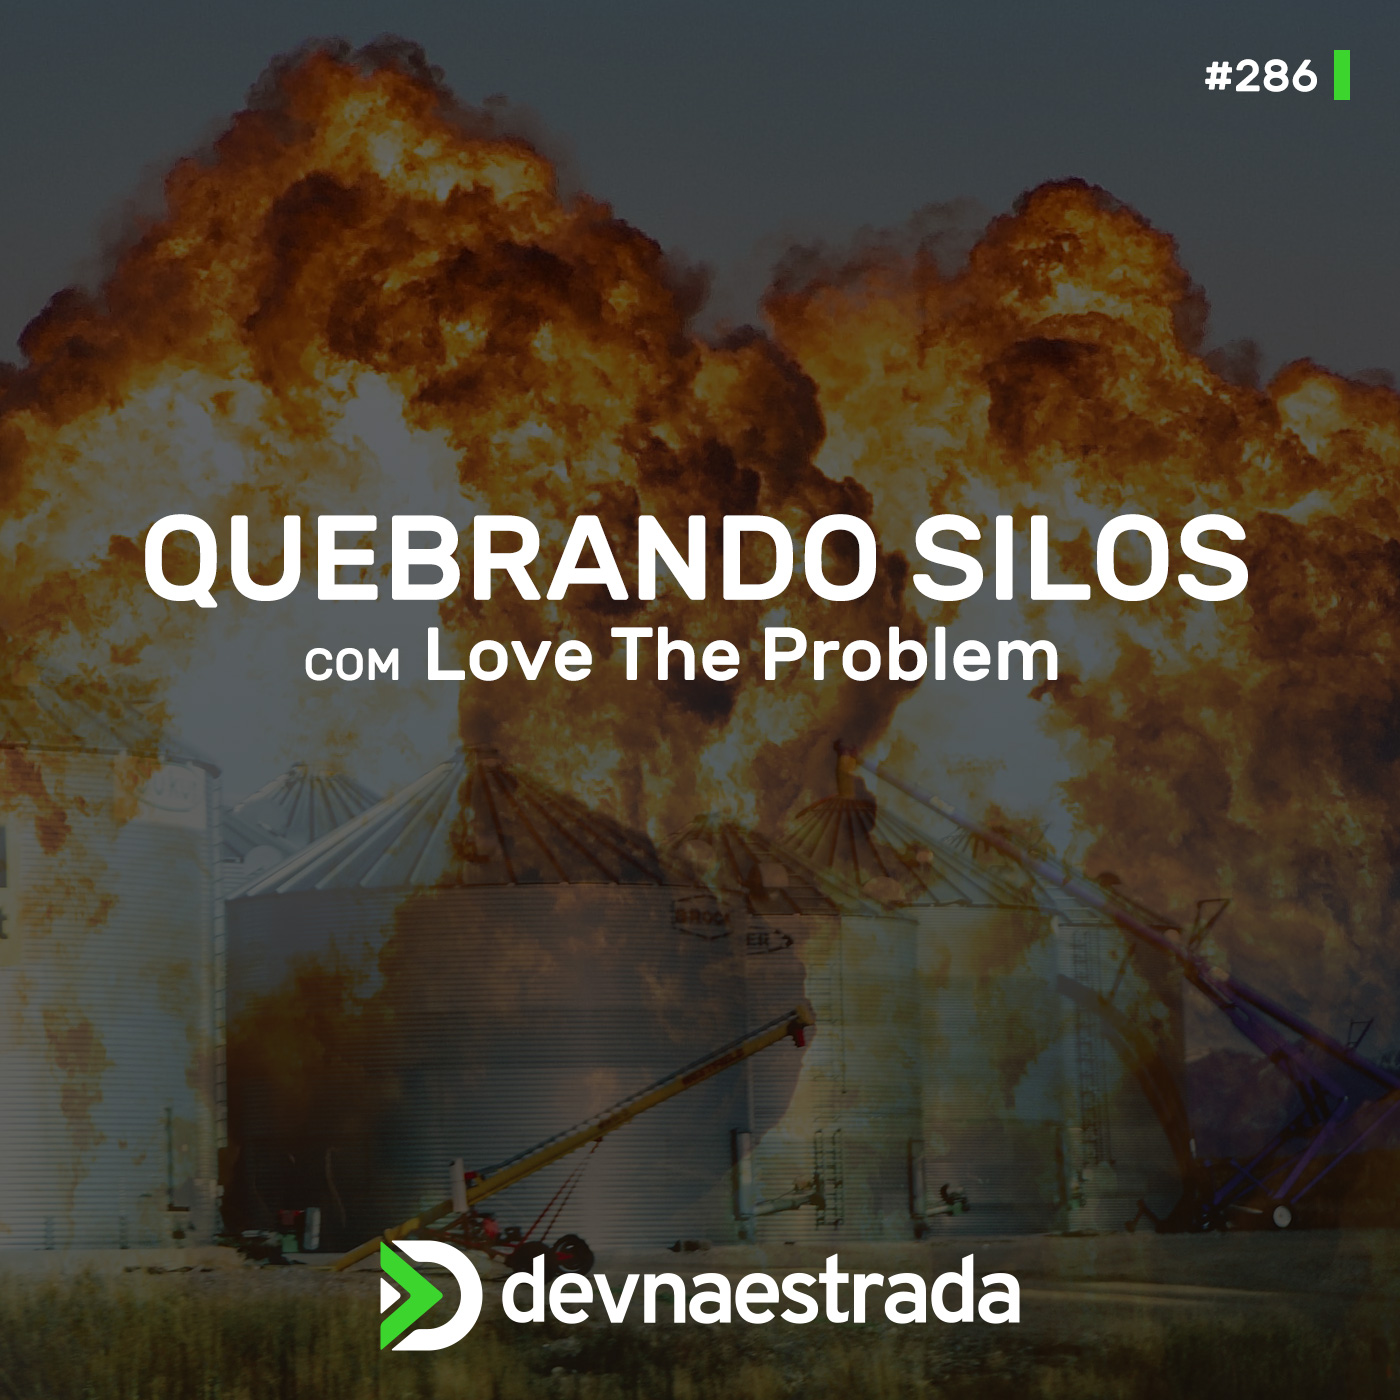 Quebrando Silos com Love The Problem